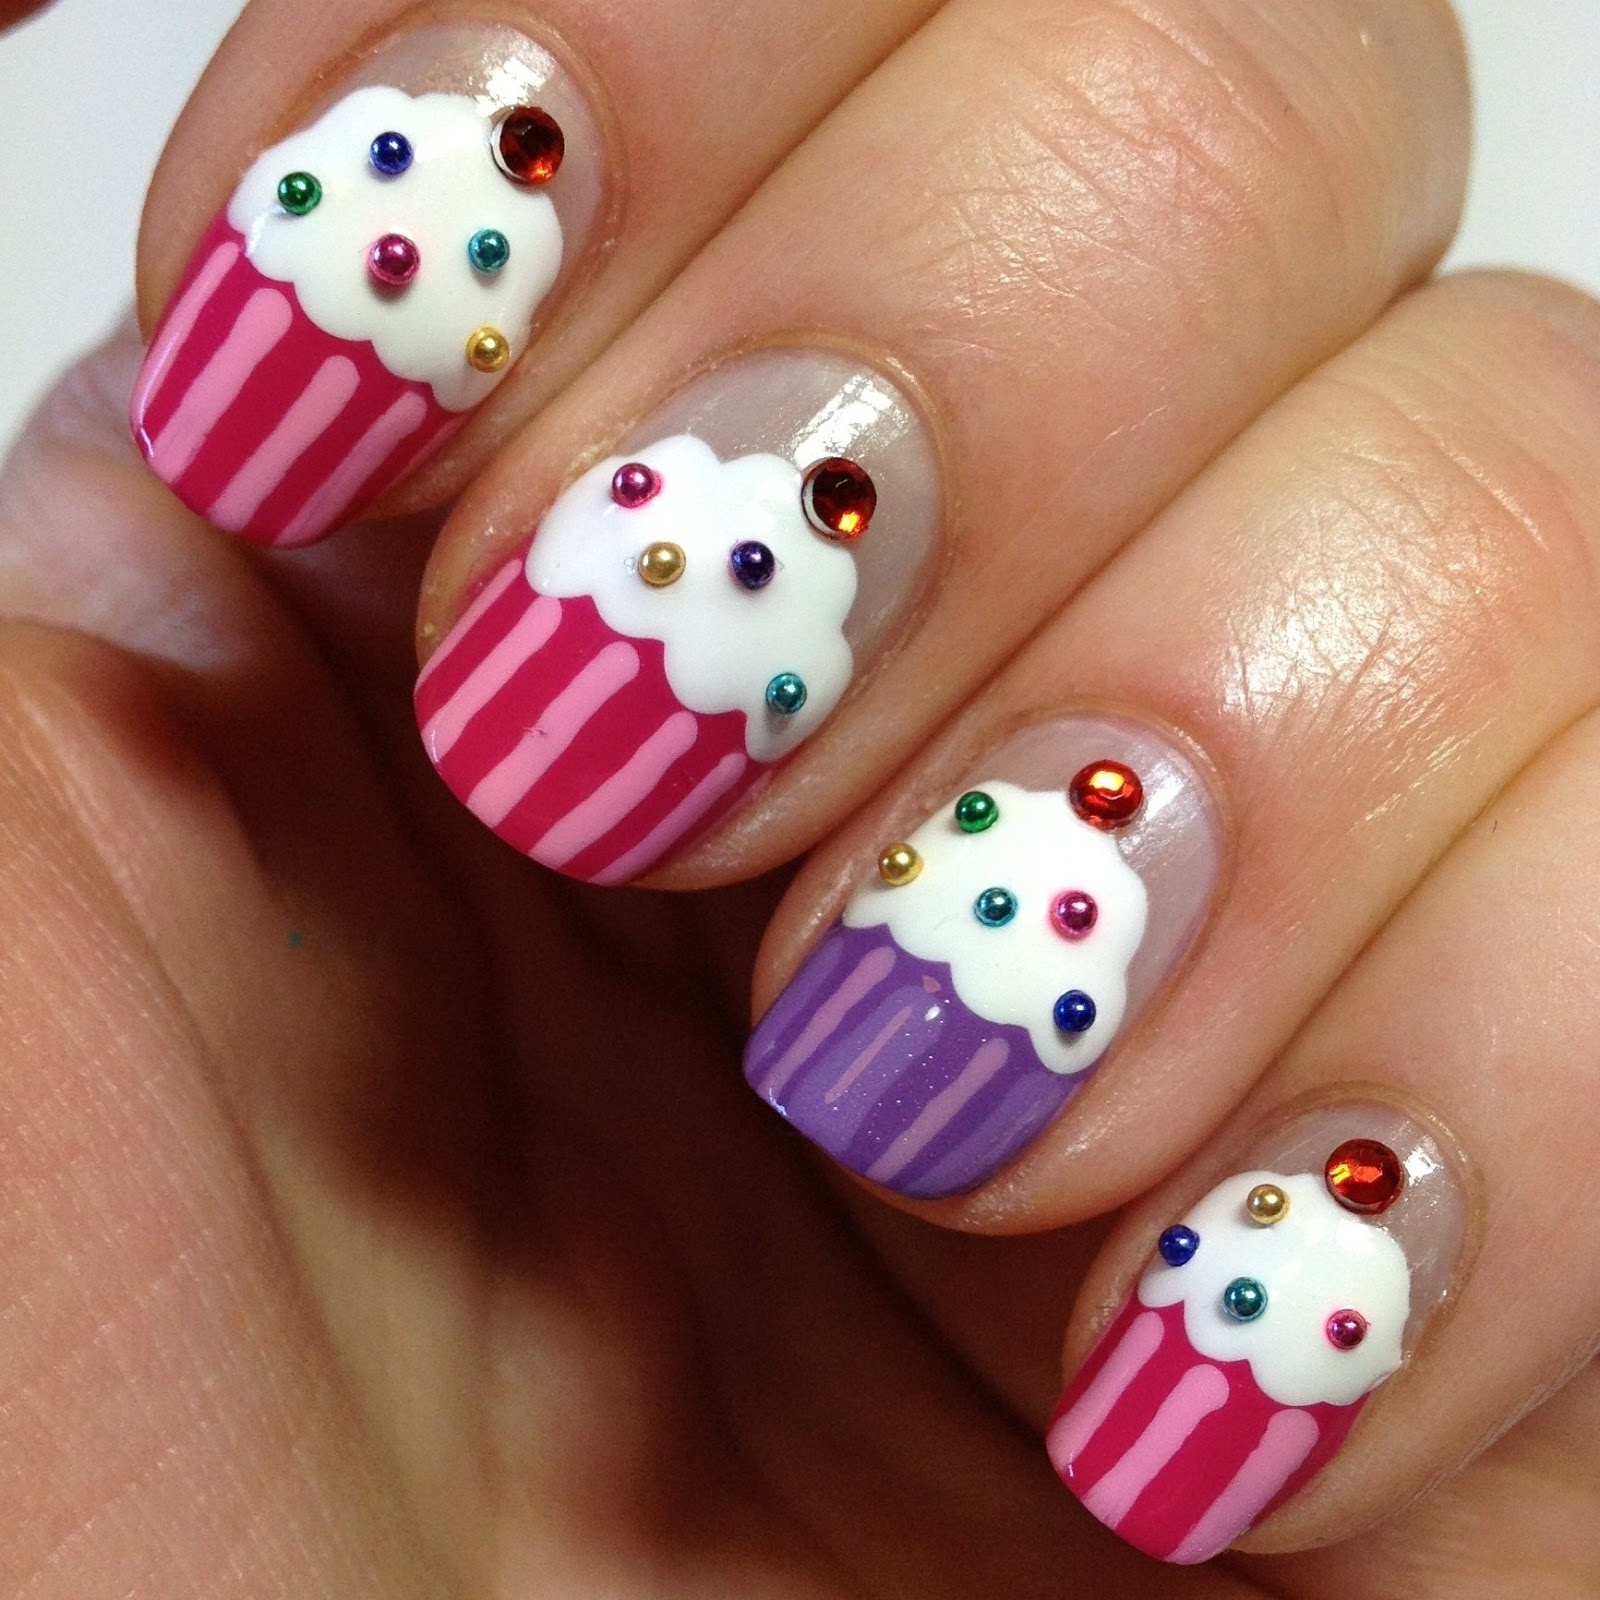 30 awesome cupcake nail art designs 201516 30 awesome cupcake nail art designs 201516 30 awesome cupcake nail art designs 2015 prinsesfo Gallery